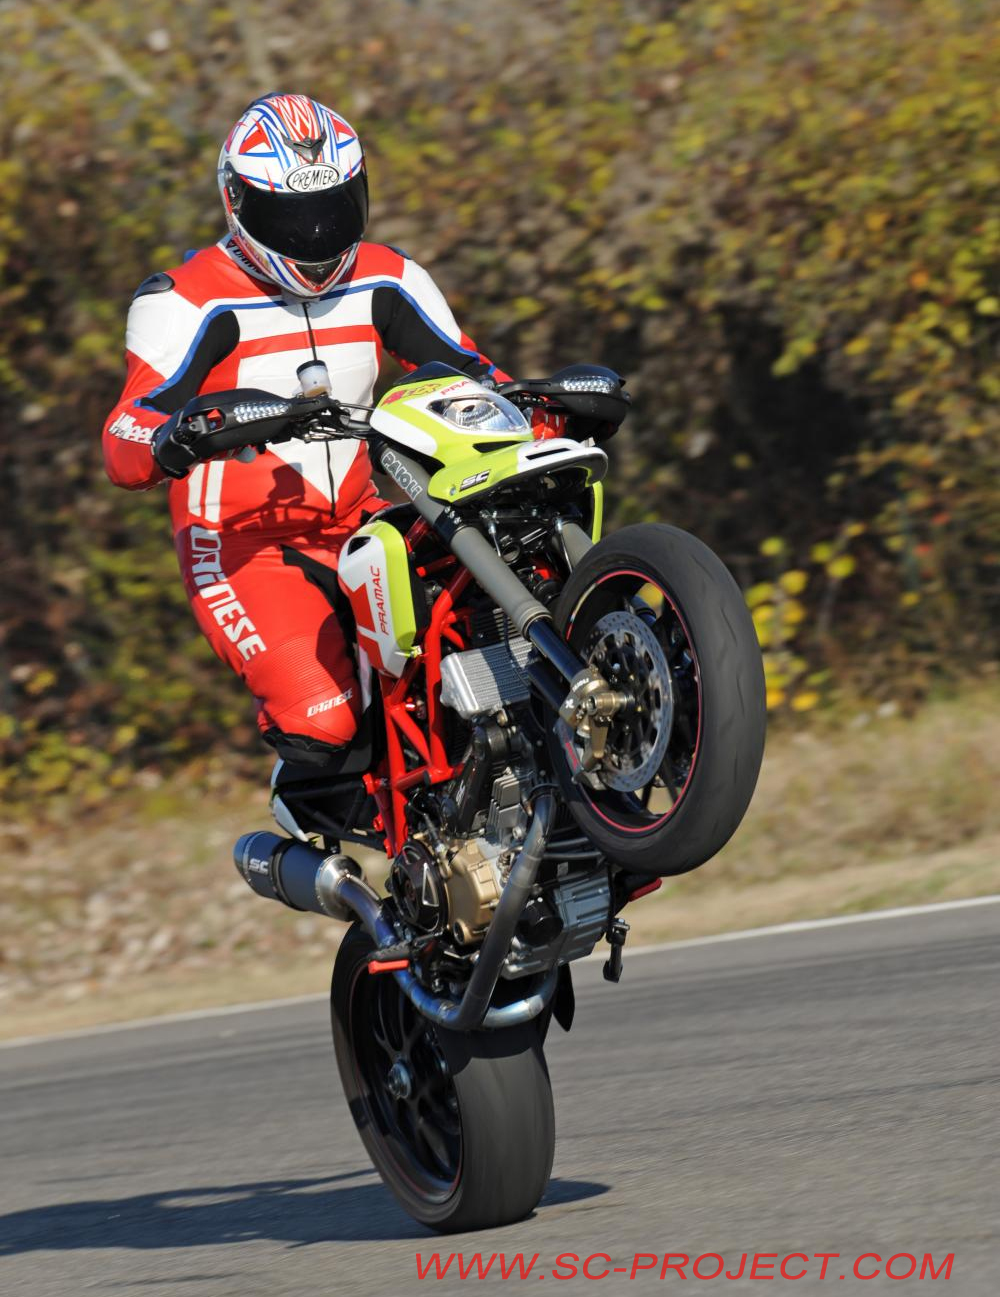 Ducati Hypermotard 796 2011 images #79589